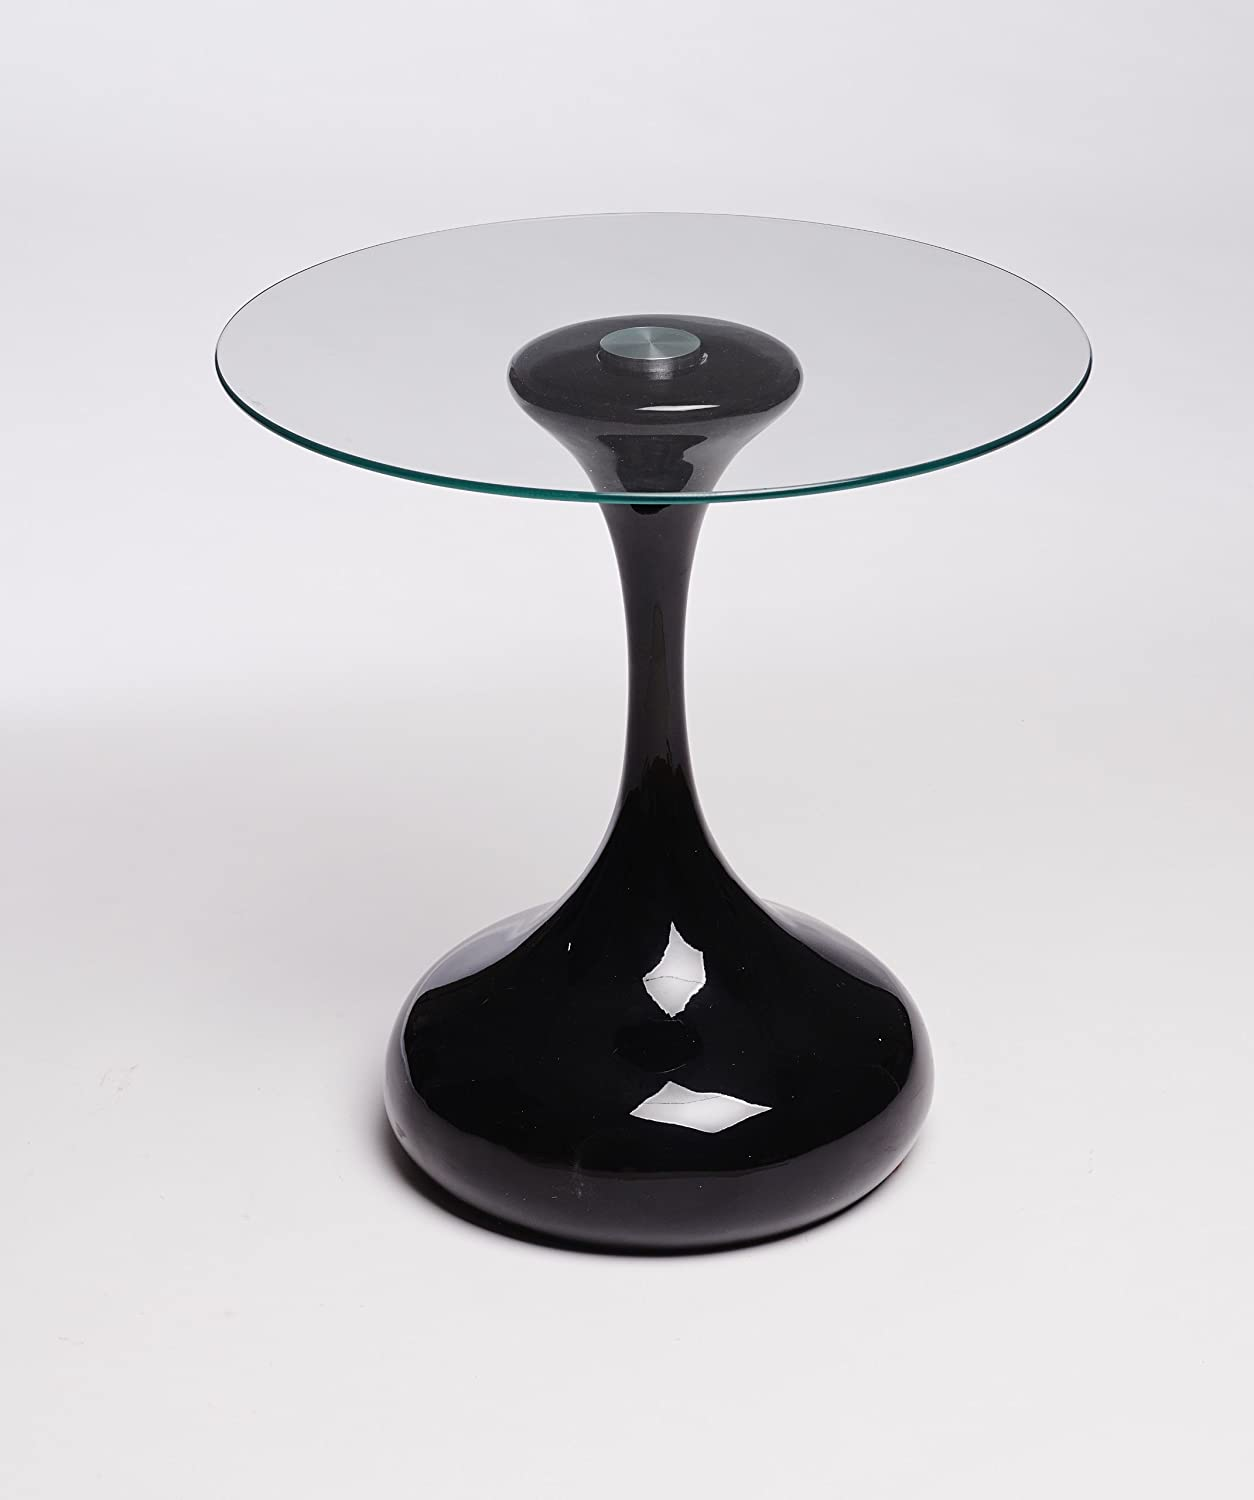 Designer hour glass round side table end table lamp table black designer hour glass round side table end table lamp table black amazon kitchen home mozeypictures Gallery